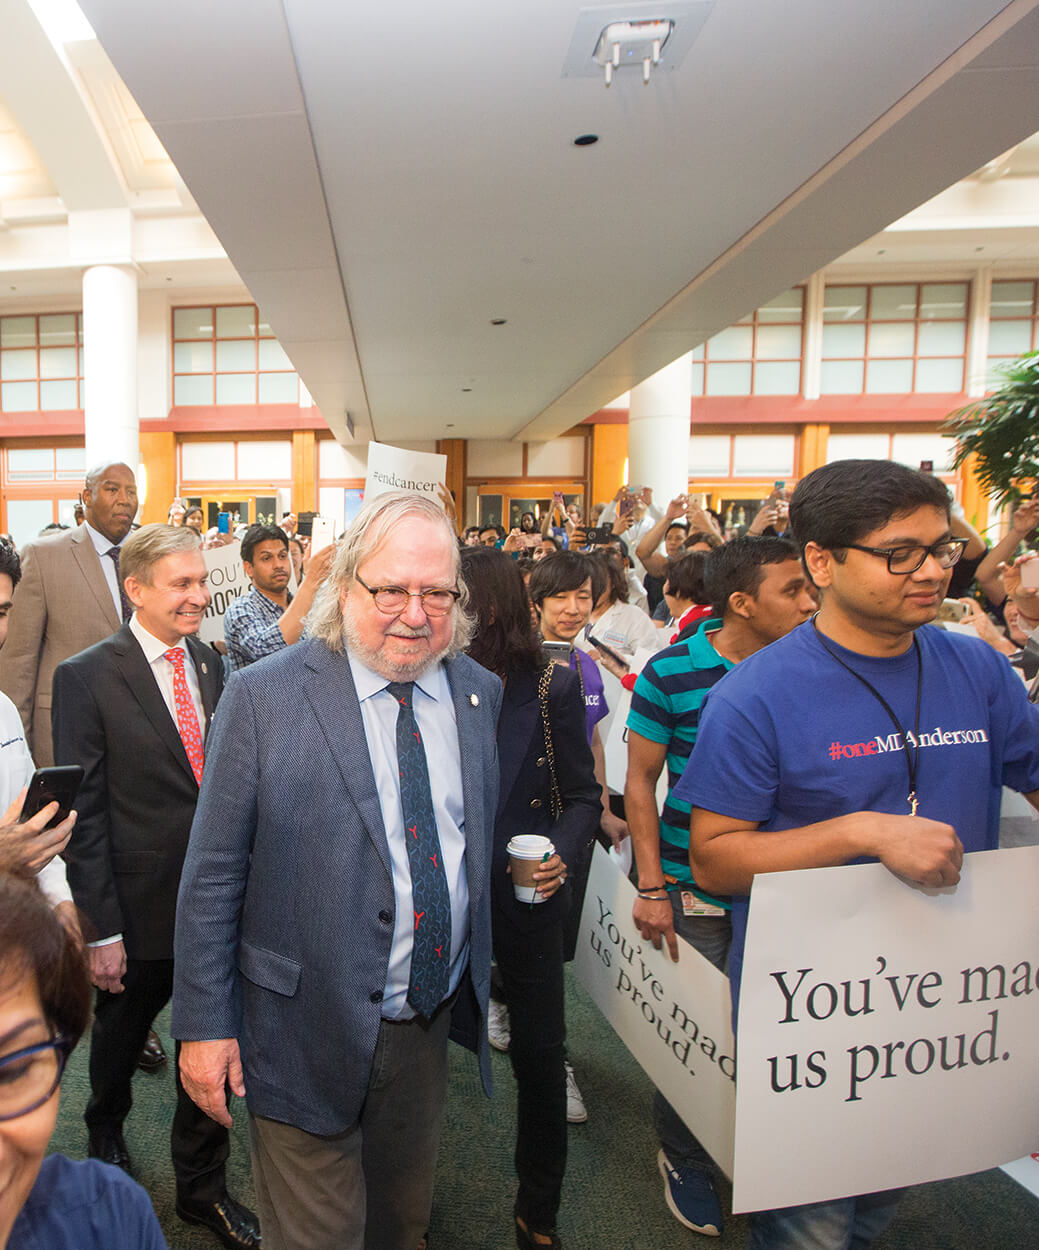 Supporters gathered inside MD Anderson to congratulate Allison on the Nobel during a parade in October 2018.